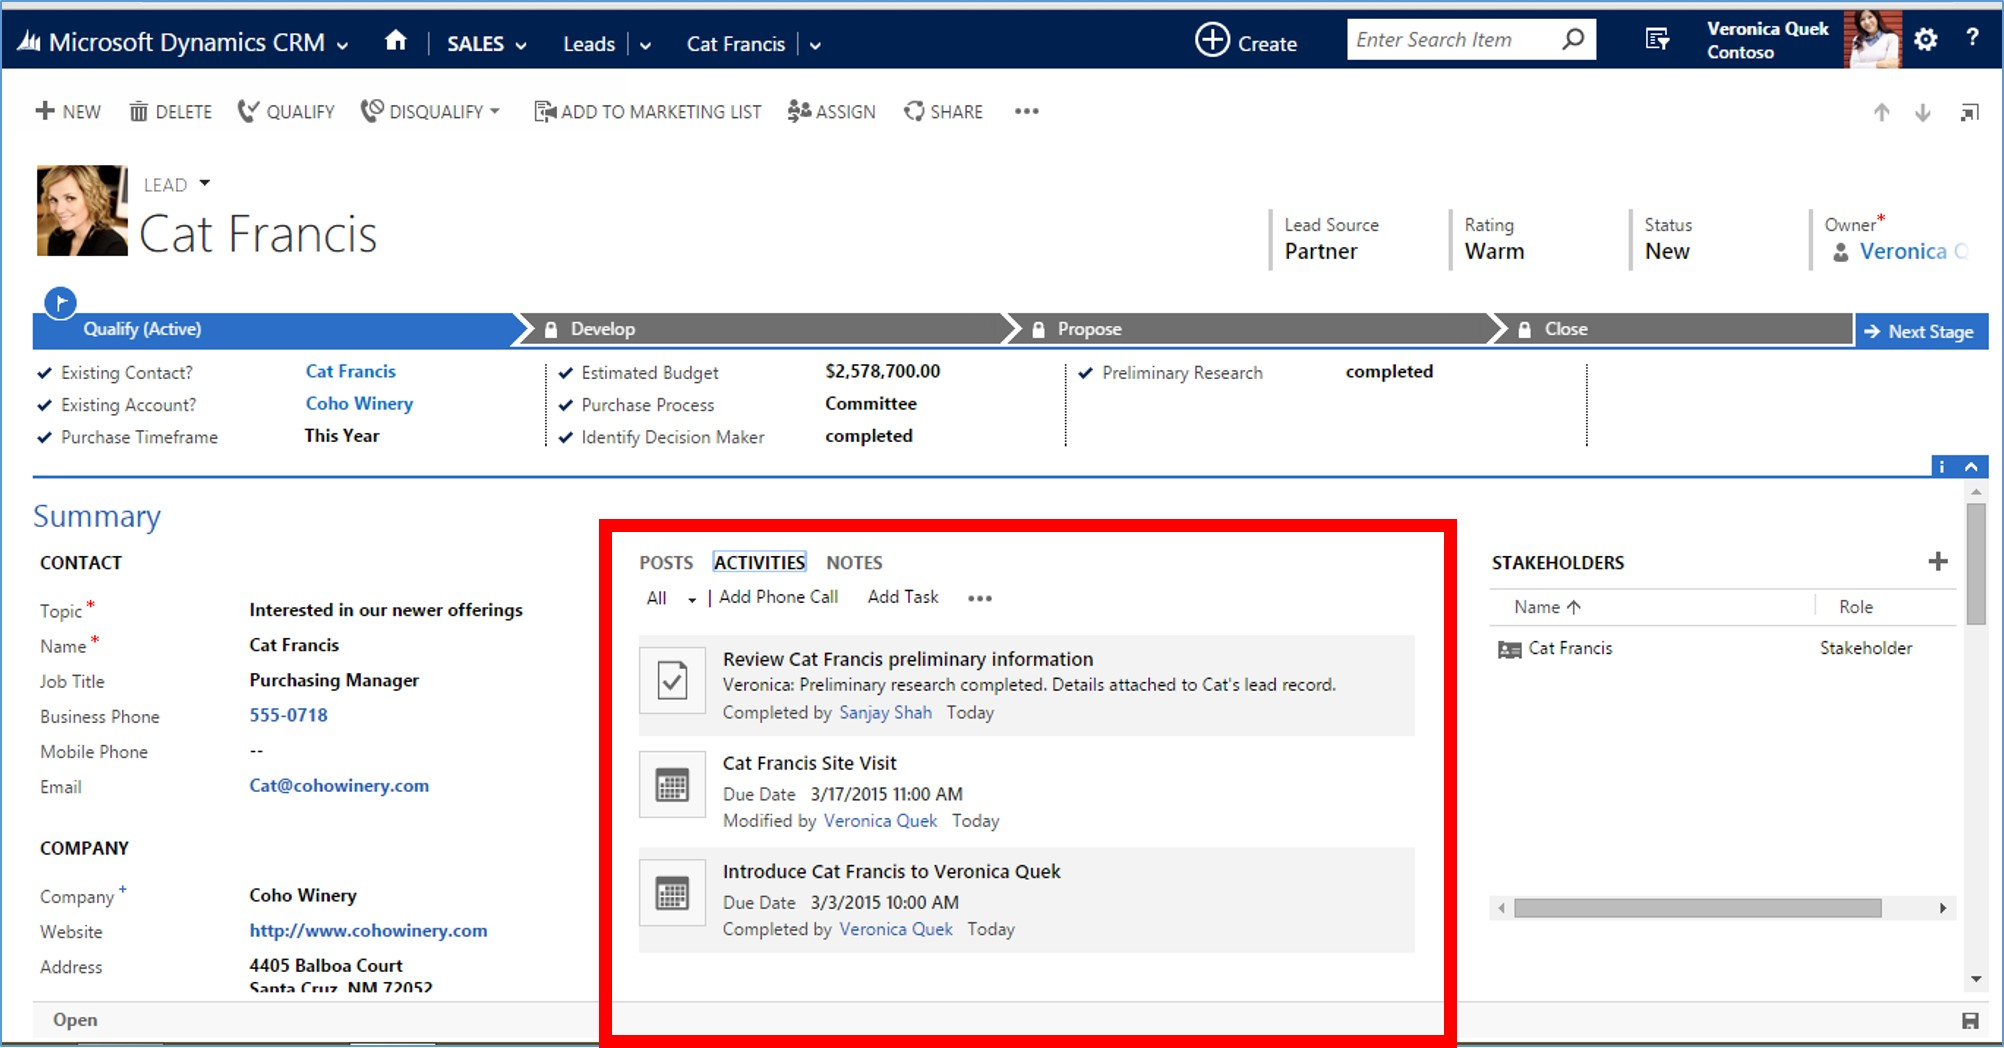 Microsoft Dynamics CRM Basics for Sales Professionals - 4 Tips for Sales Managers 2